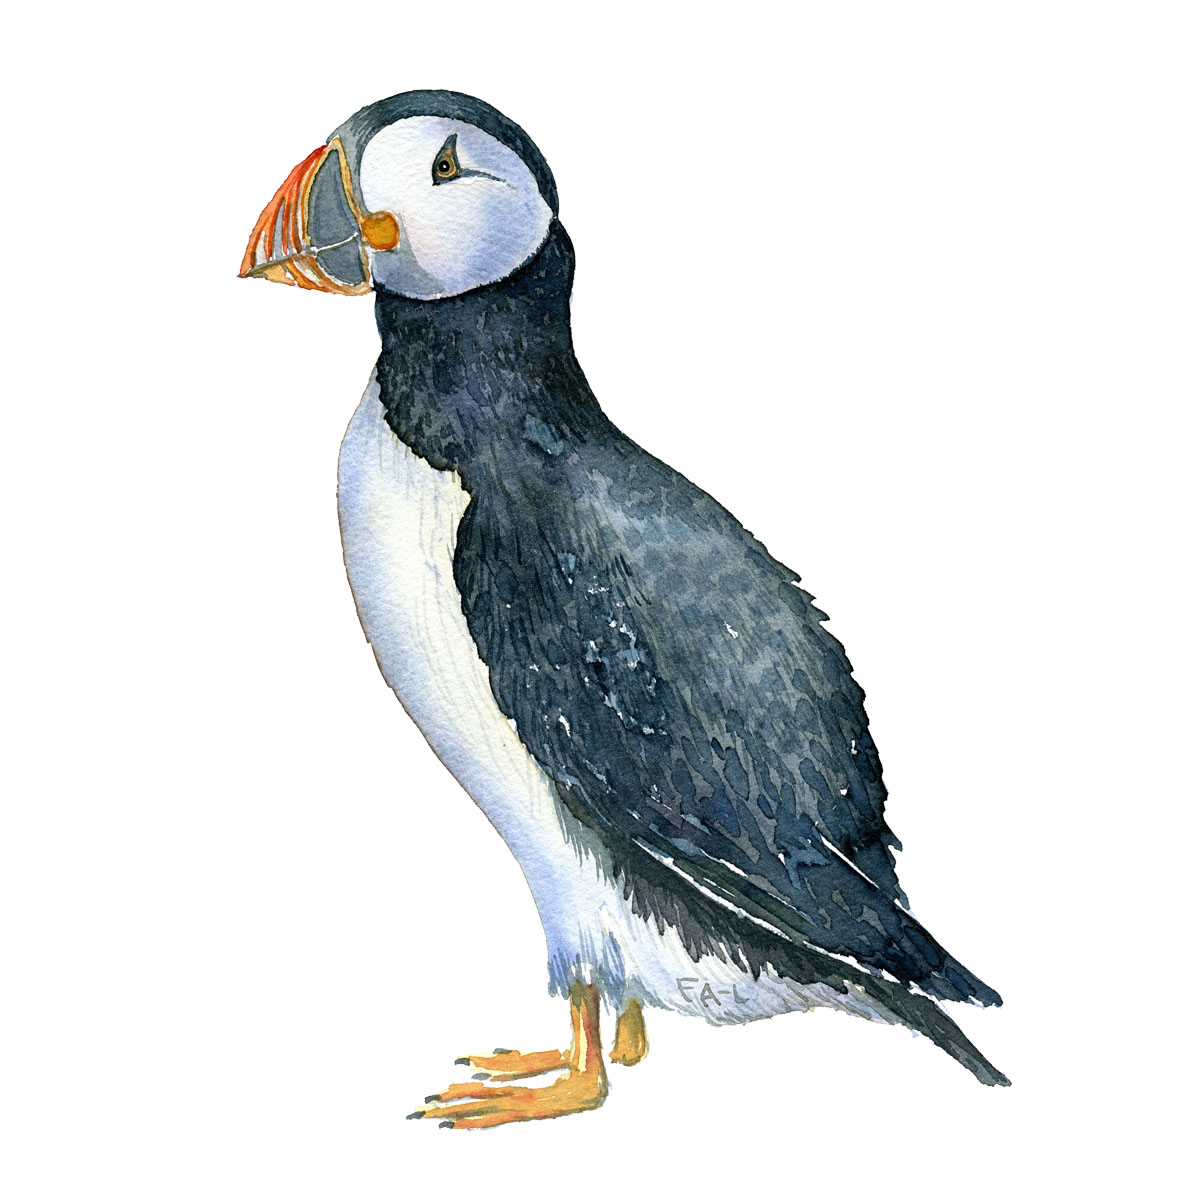 Lunde - Atlantic puffin bird watercolor painting. Artwork by Frits Ahlefeldt. Fugle akvarel